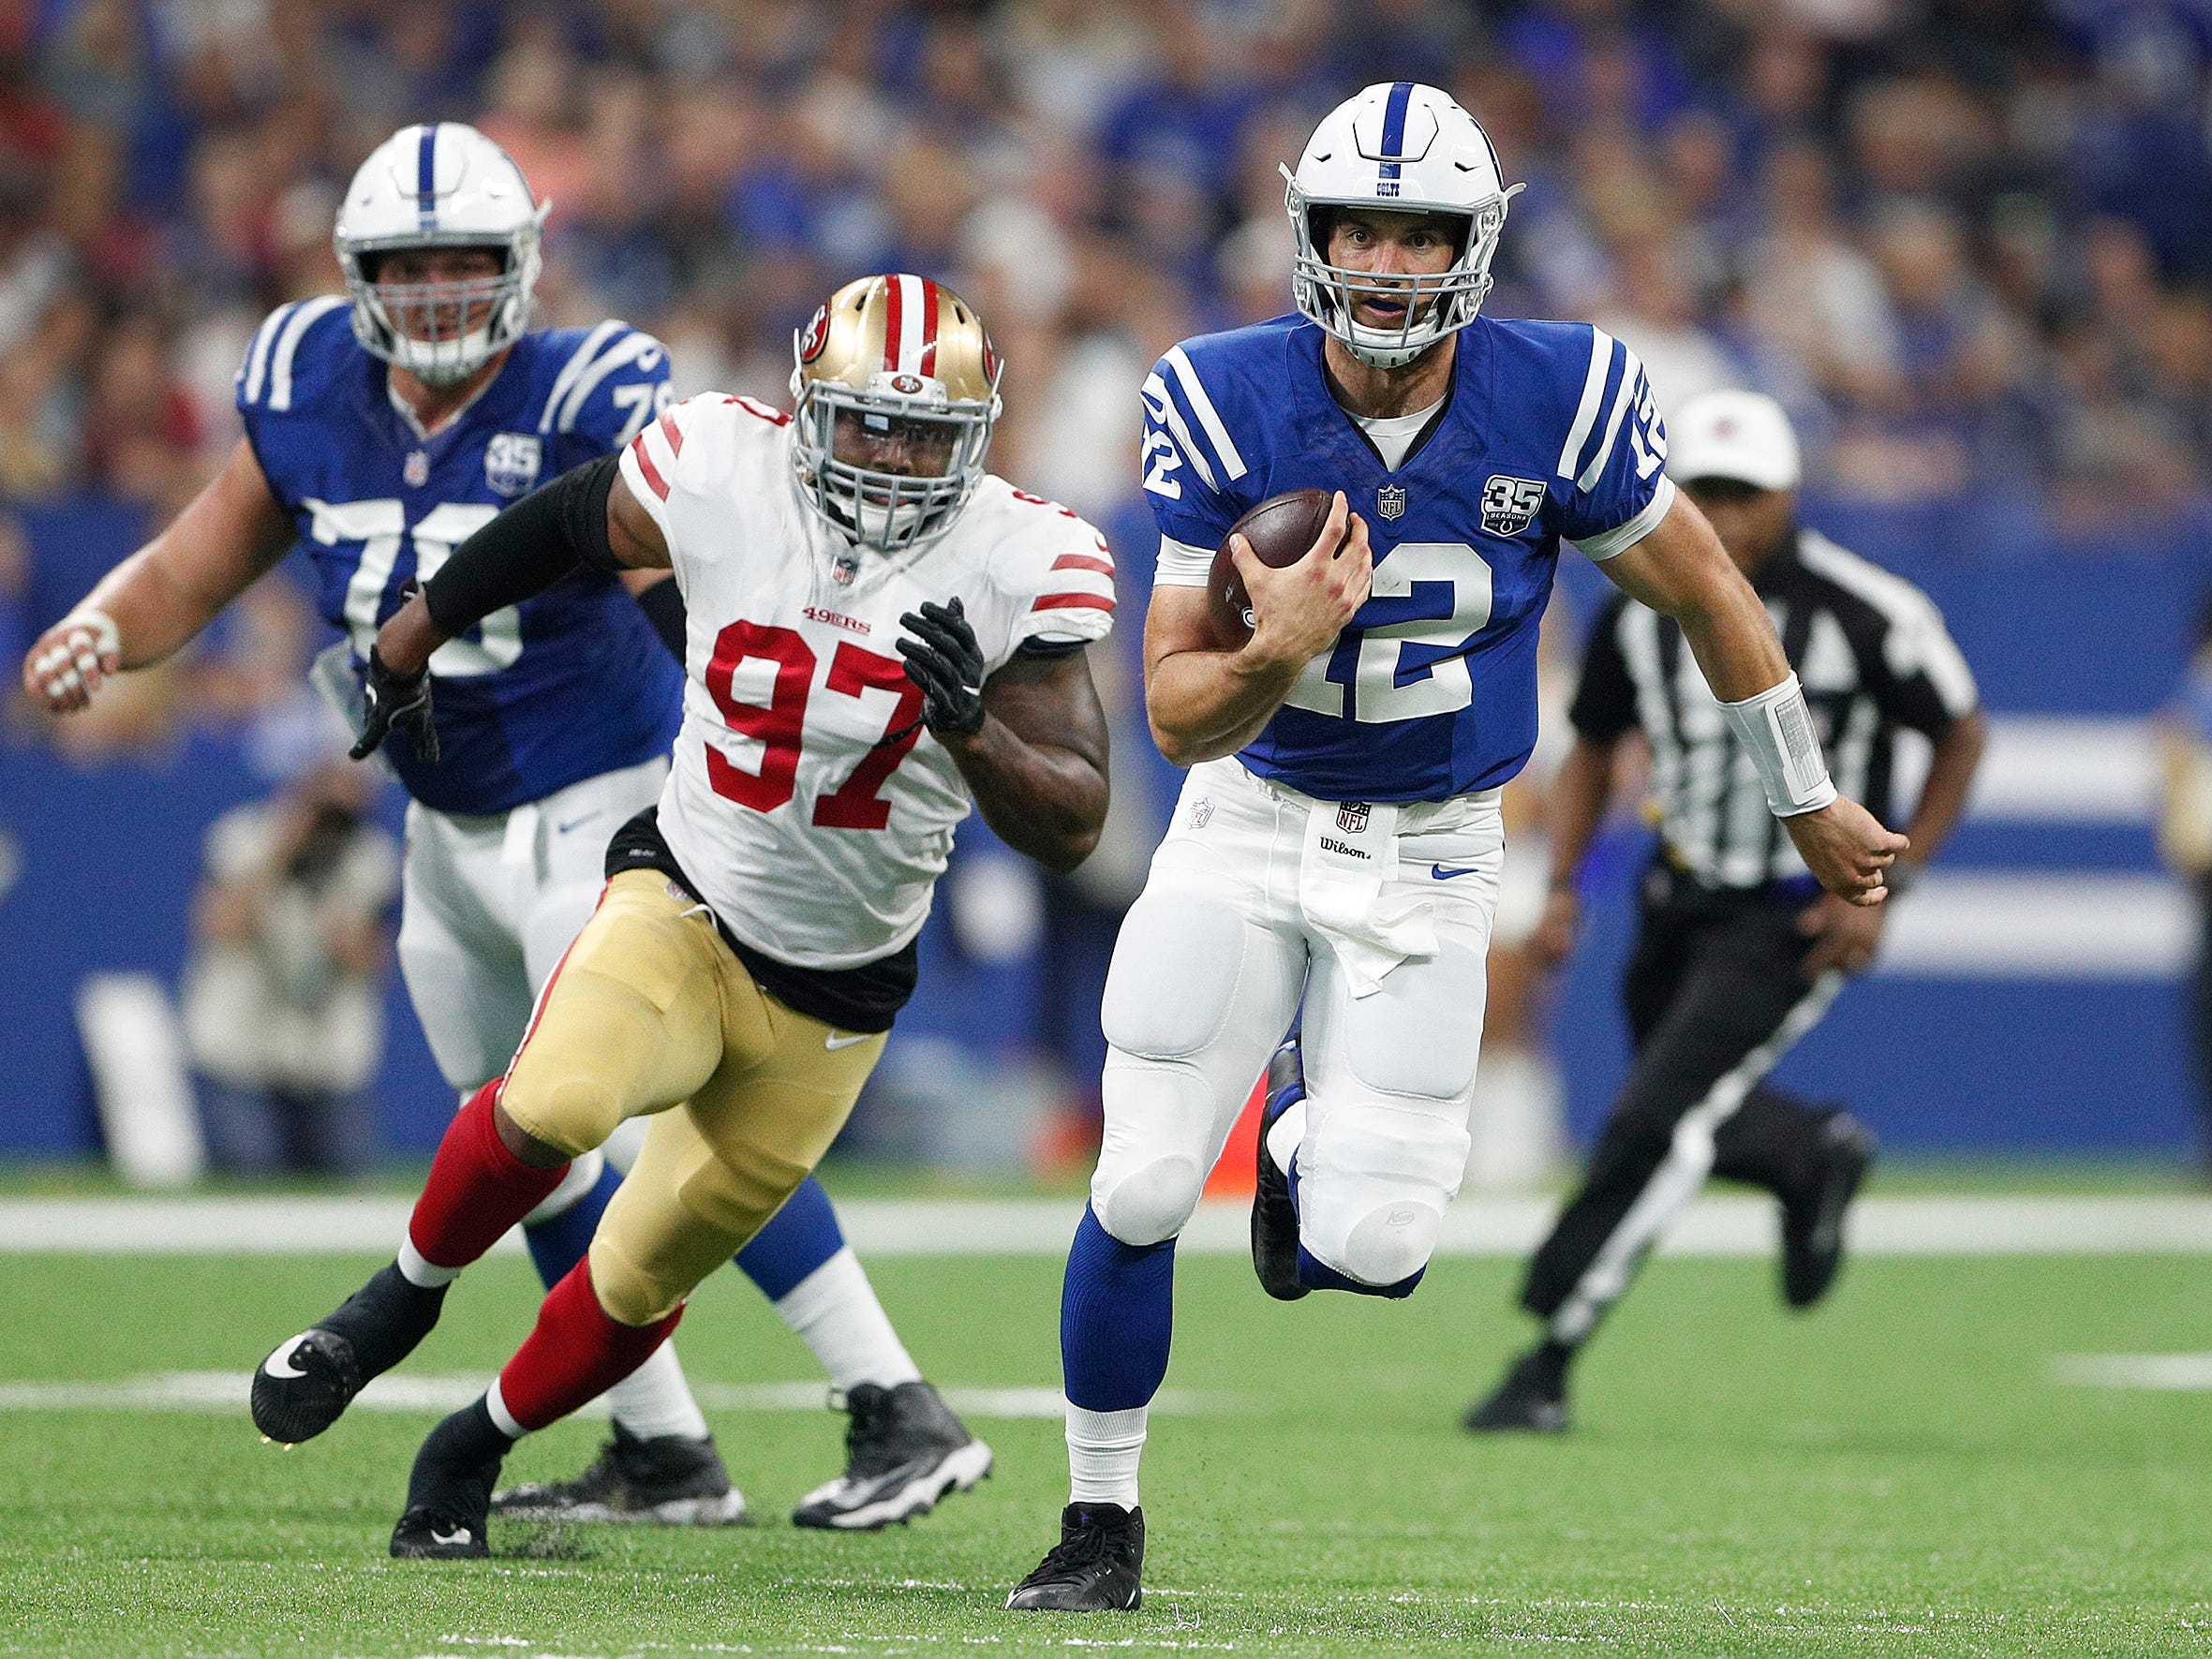 Indianapolis Colts quarterback Andrew Luck (12) runs for a first down in the first half of their preseason football game at Lucas Oil Stadium Saturday, August 25, 2018.